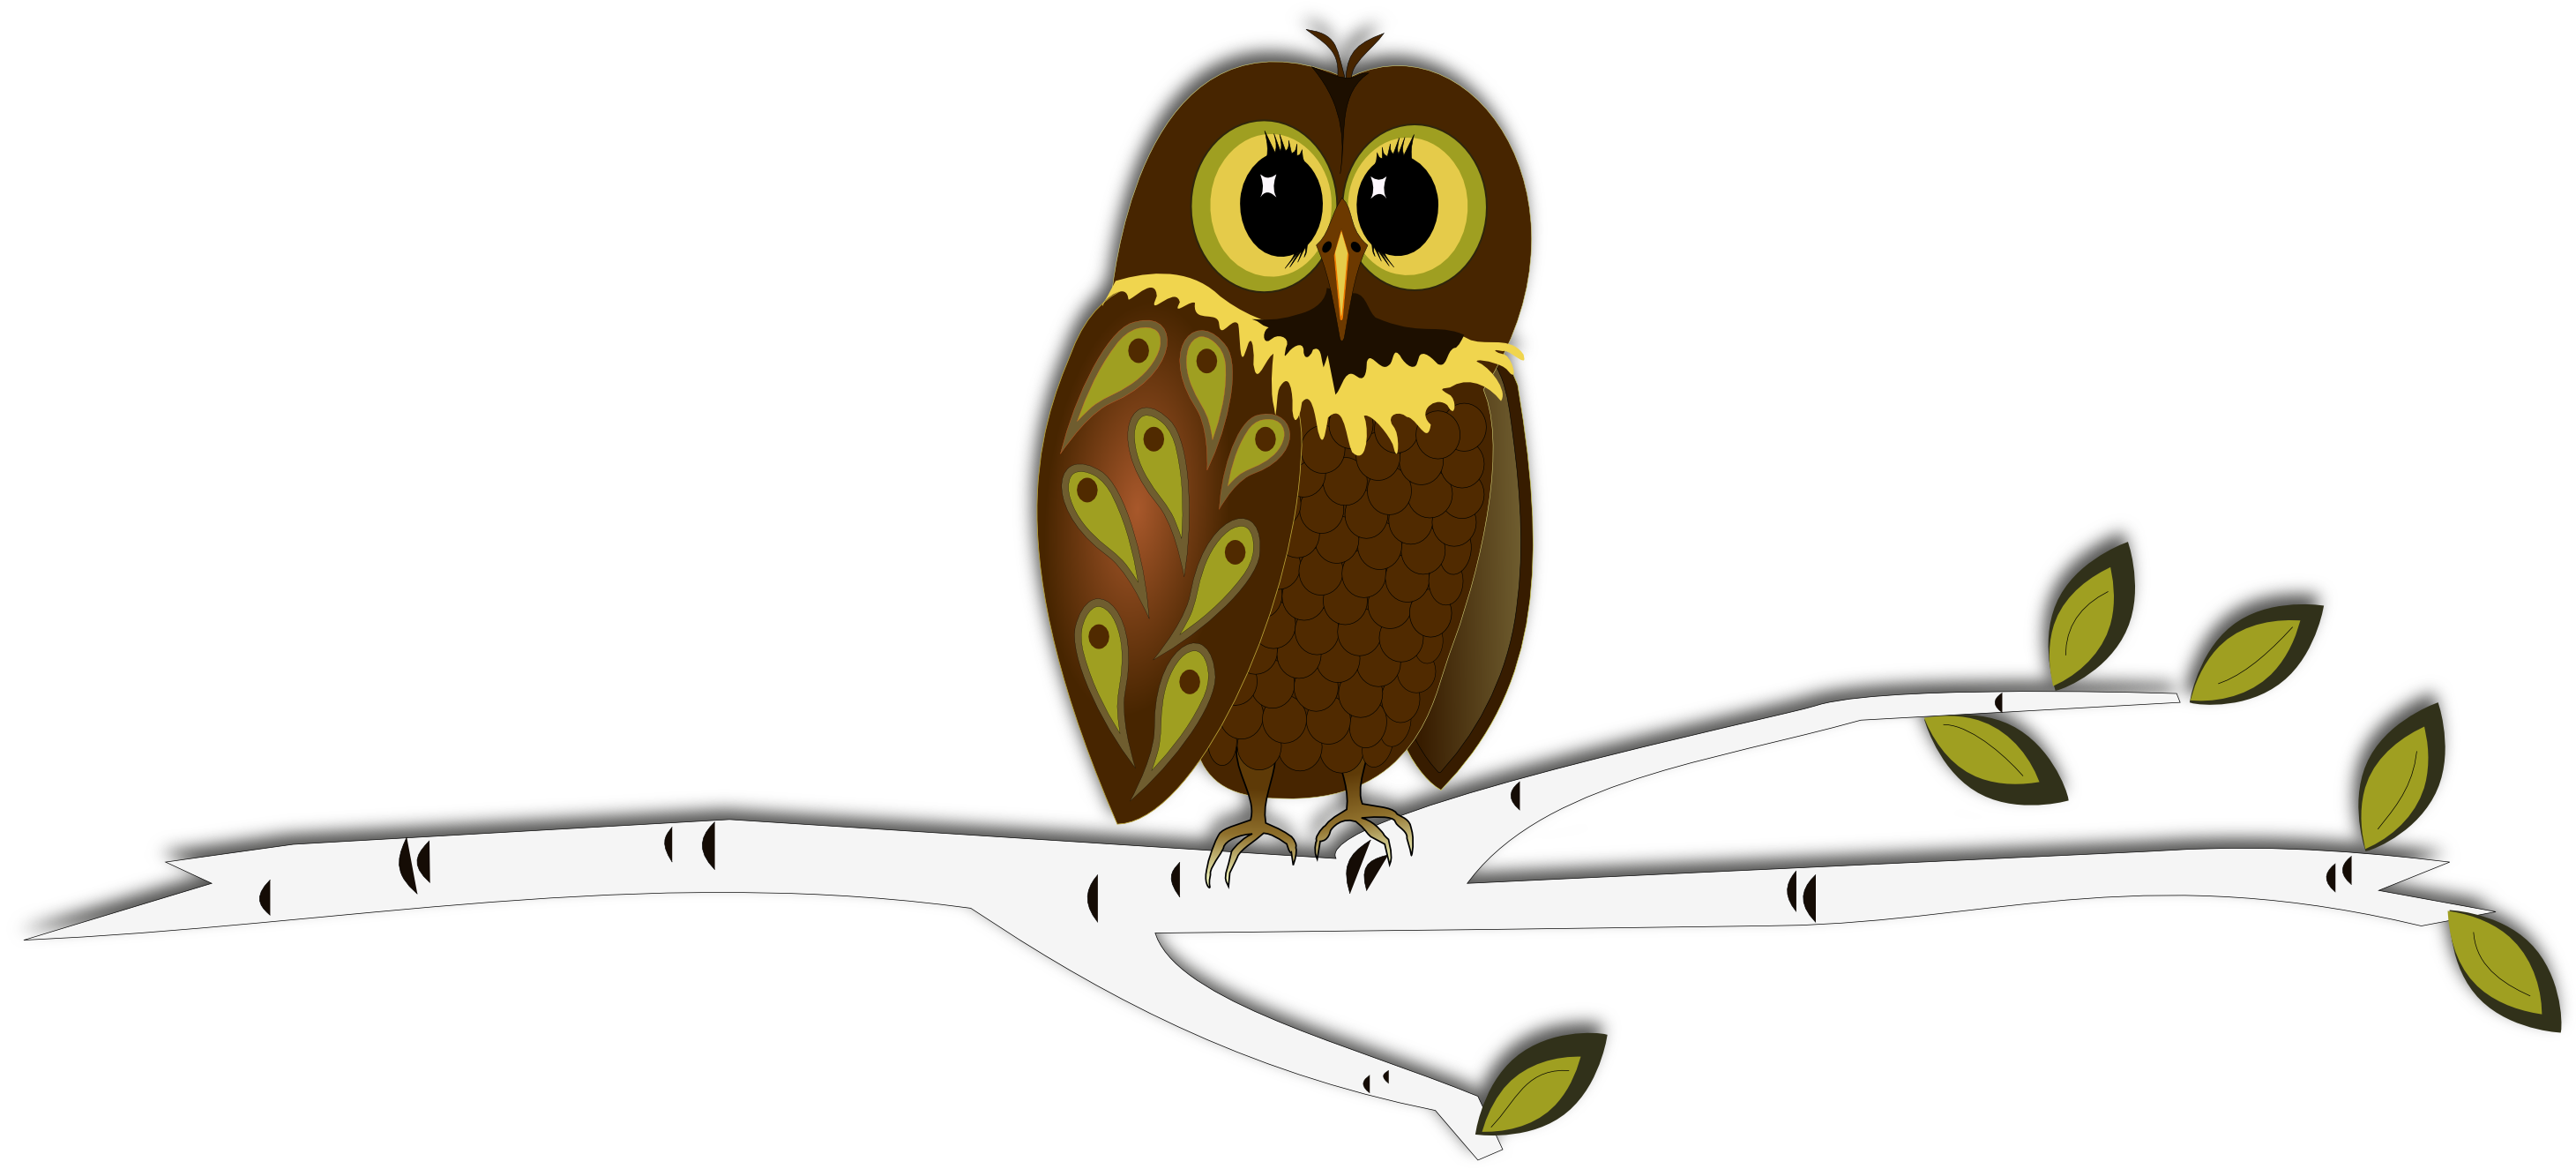 graphic transparent library Inkscape into autumn free. Drawing owl tree